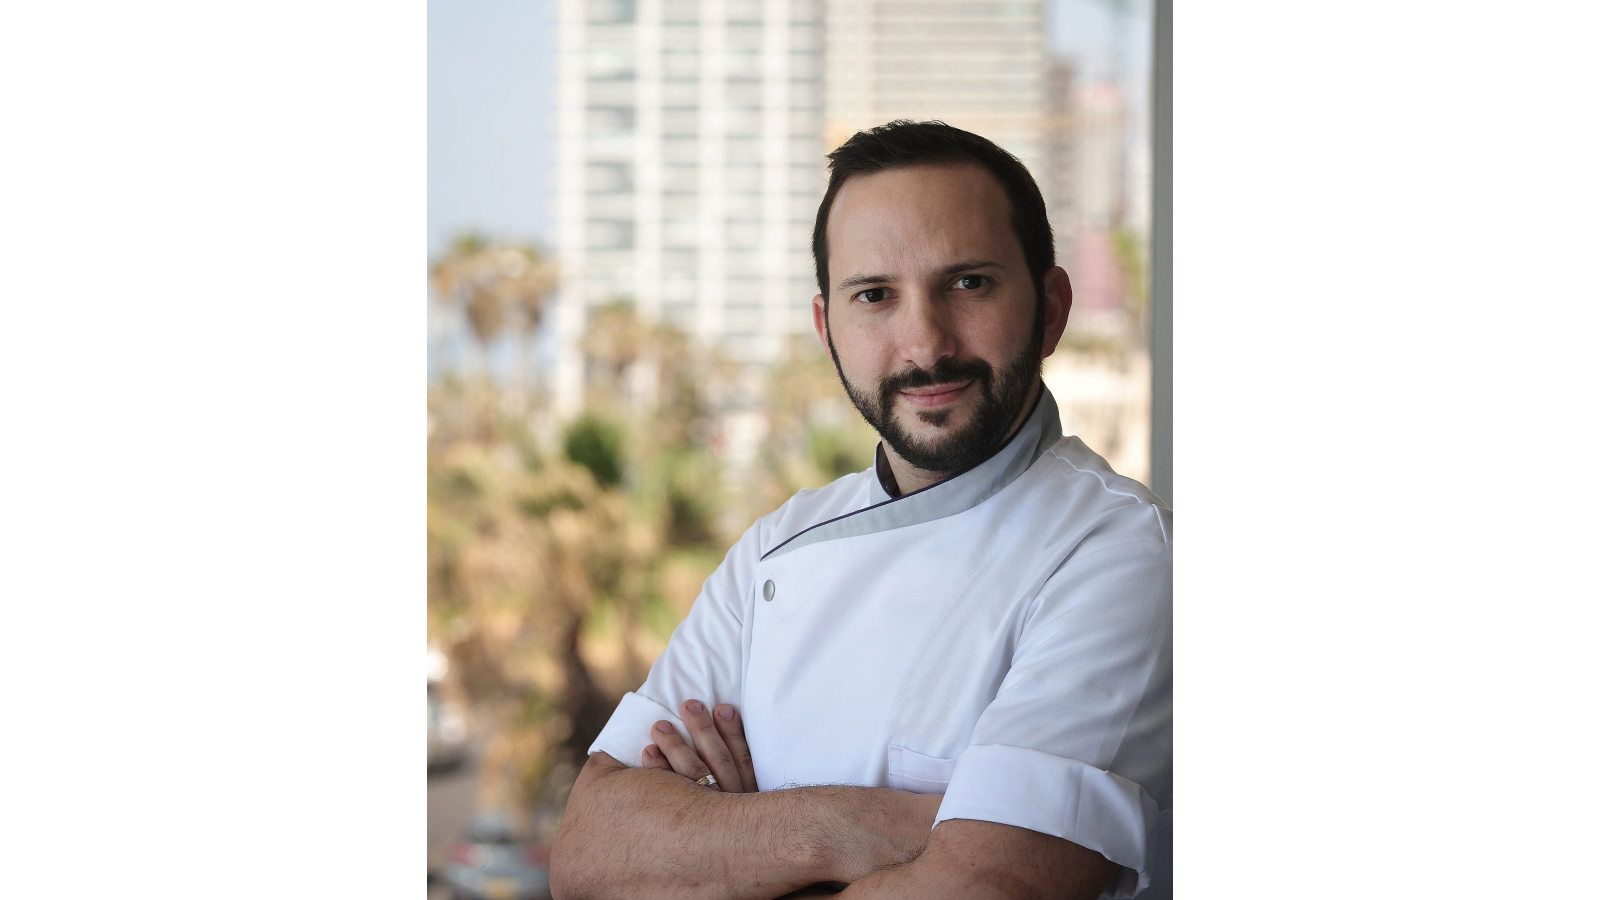 Chef Mor Cohen truly started following his vocation as early as of 3-years-old. The 31-year-old Israeli completed his training at the famed London culinary school, Le Cordon Bleu.  Followed by professional milestones at the Ritz Club London, the French Em